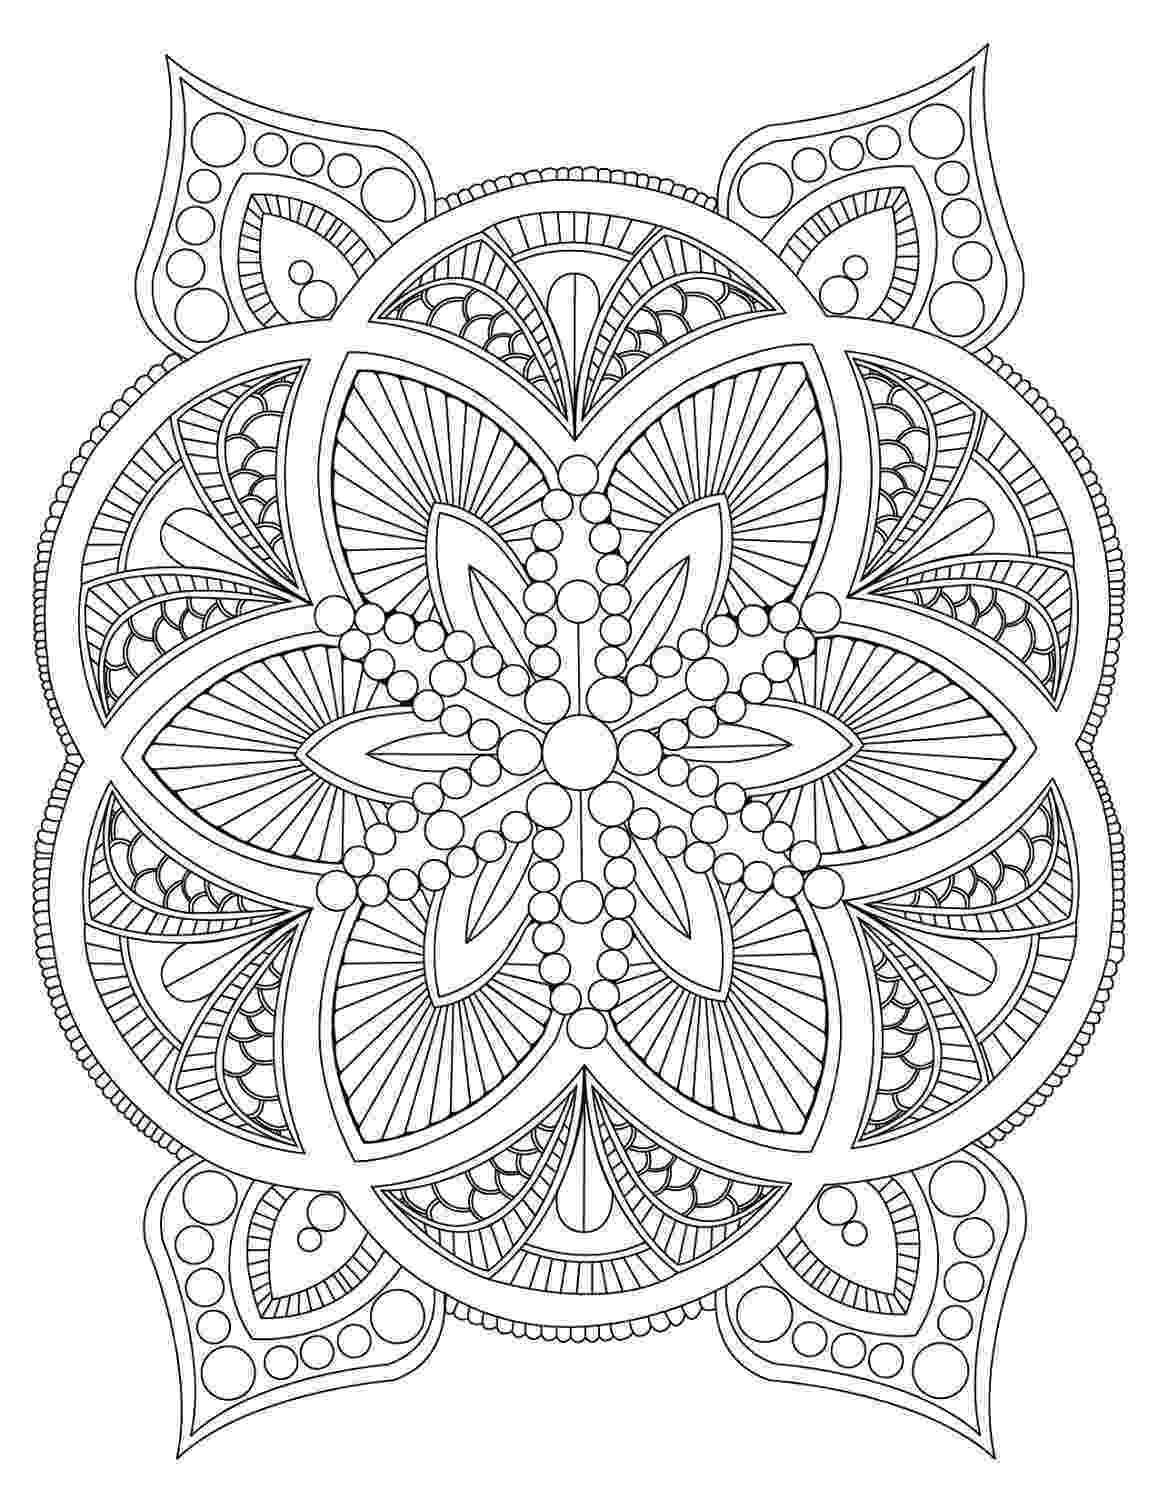 mandala coloring pages for adults free free mandala coloring pages for adults coloring home for free pages mandala adults coloring